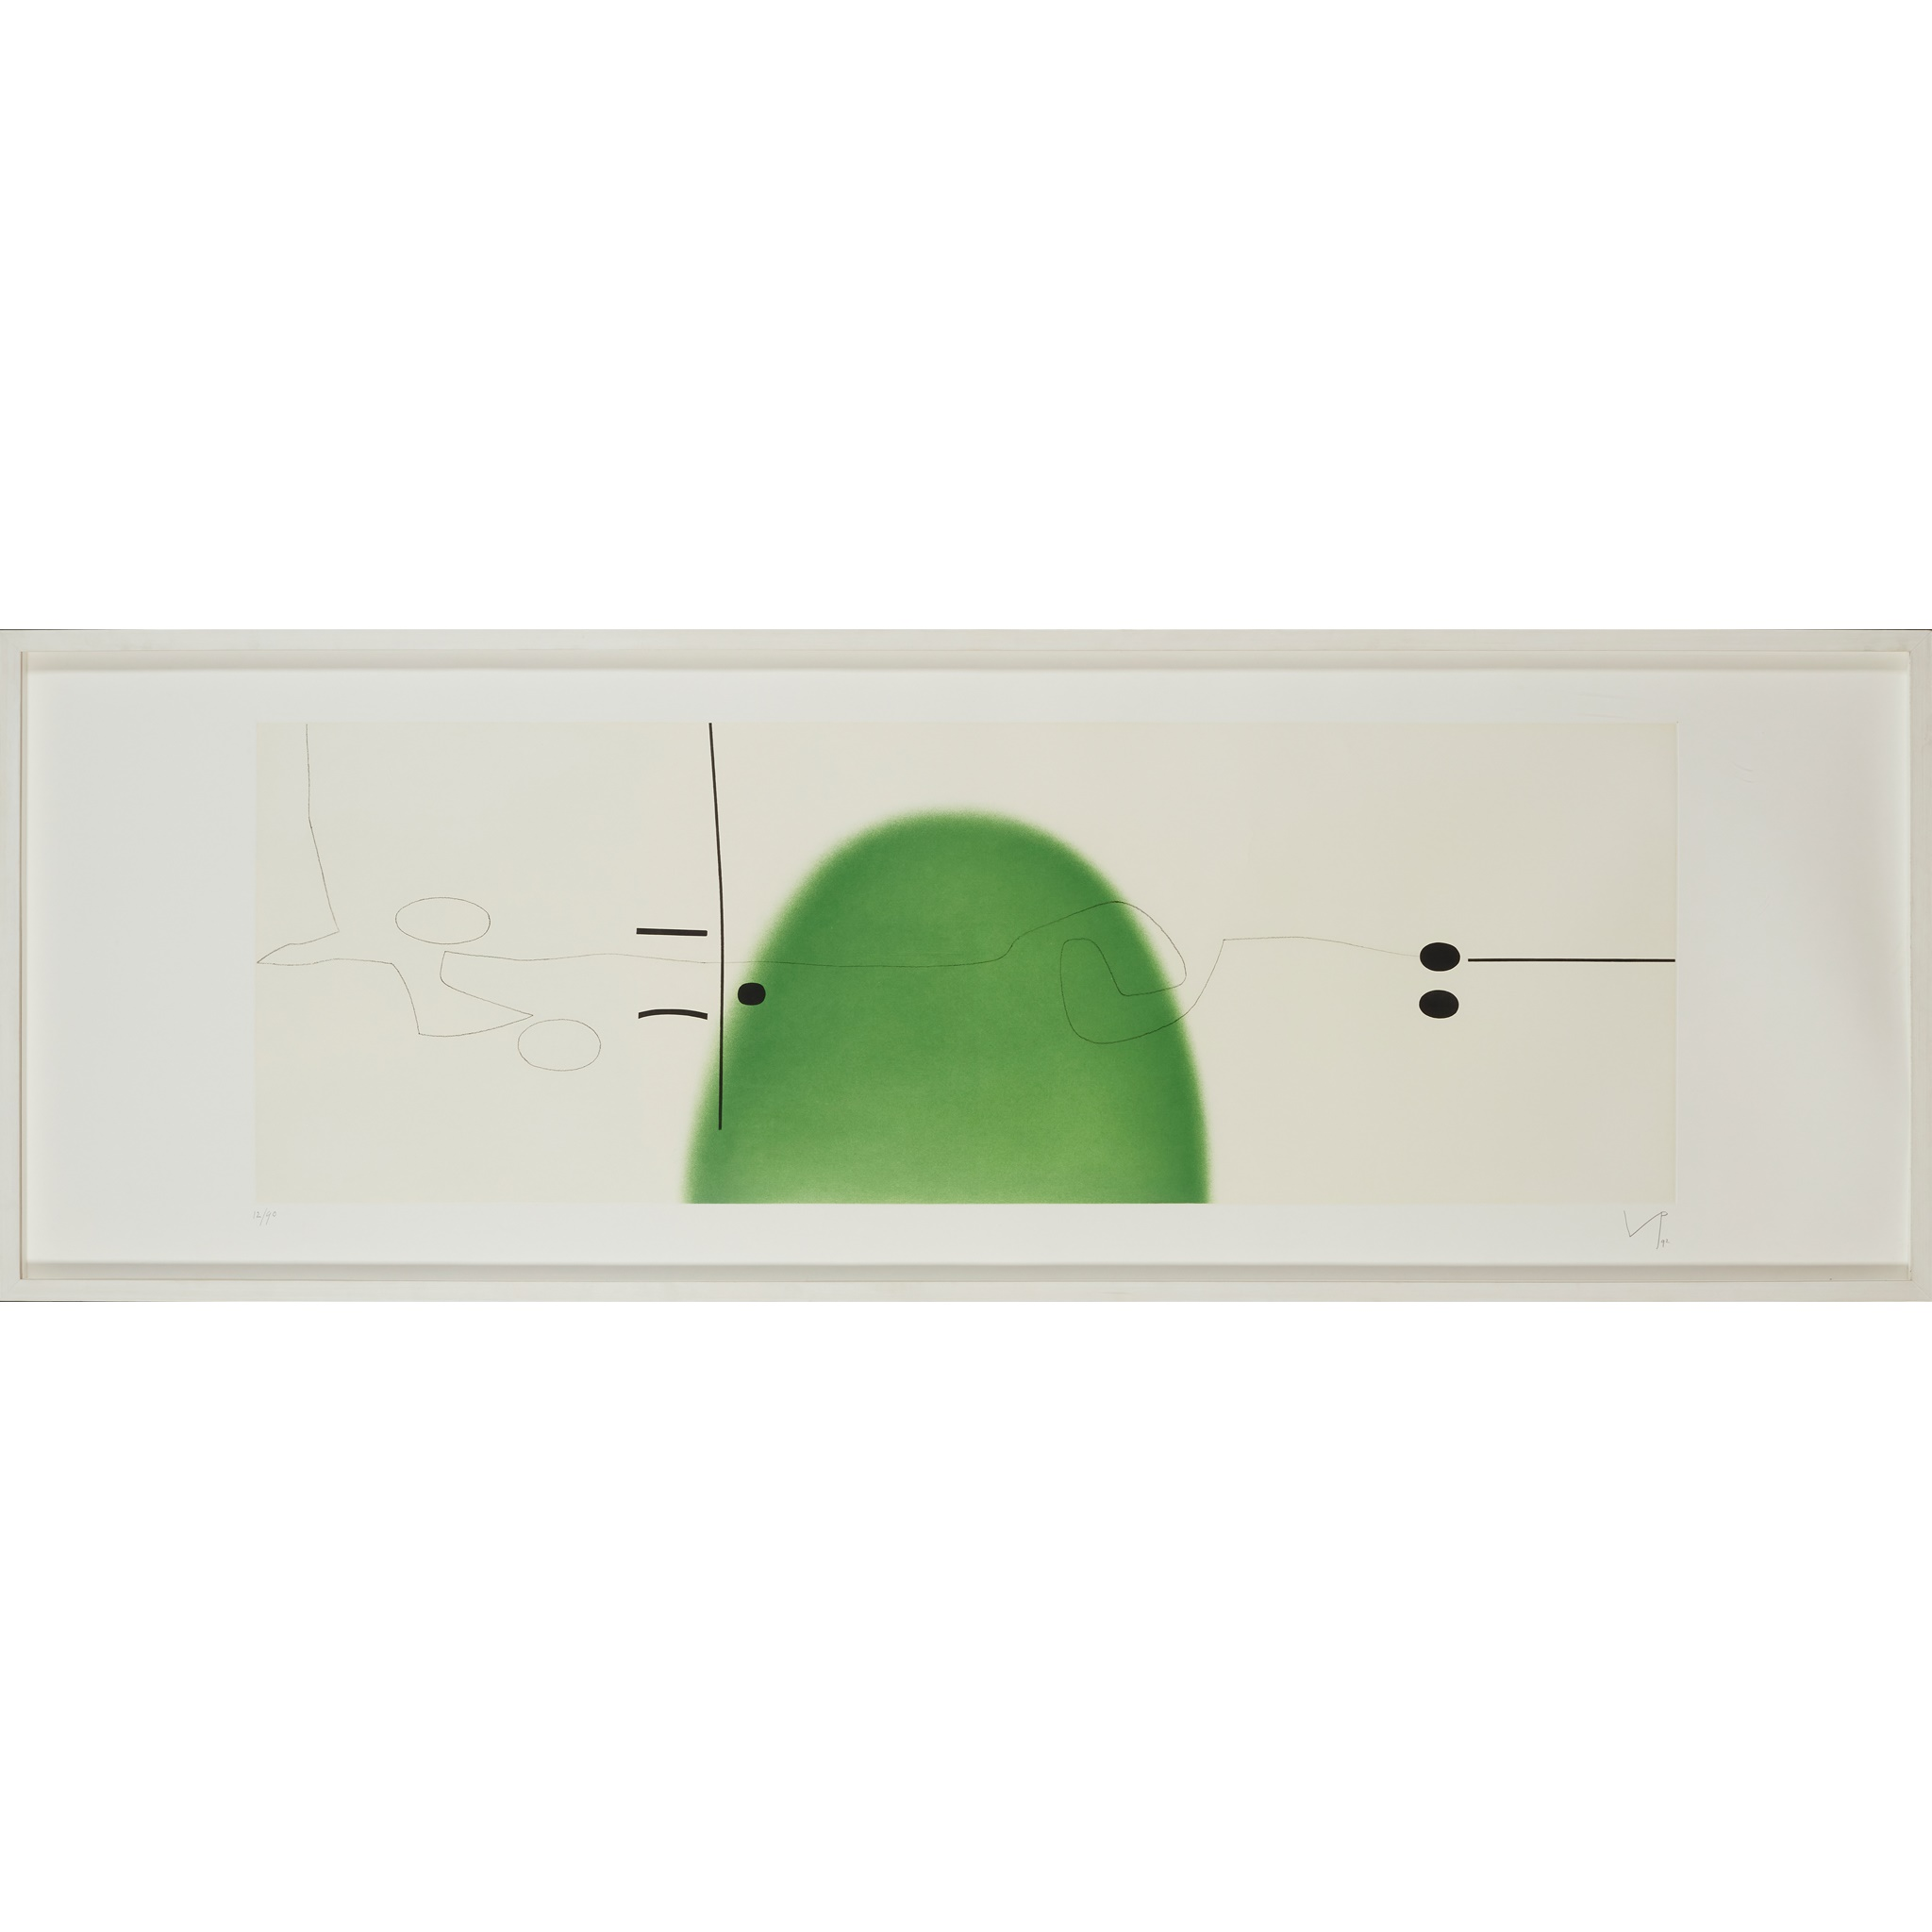 § VICTOR PASMORE C.B.E., C.H. (BRITISH 1908-1998) WORLD IN SPACE AND TIME II - 1992 - Image 2 of 3